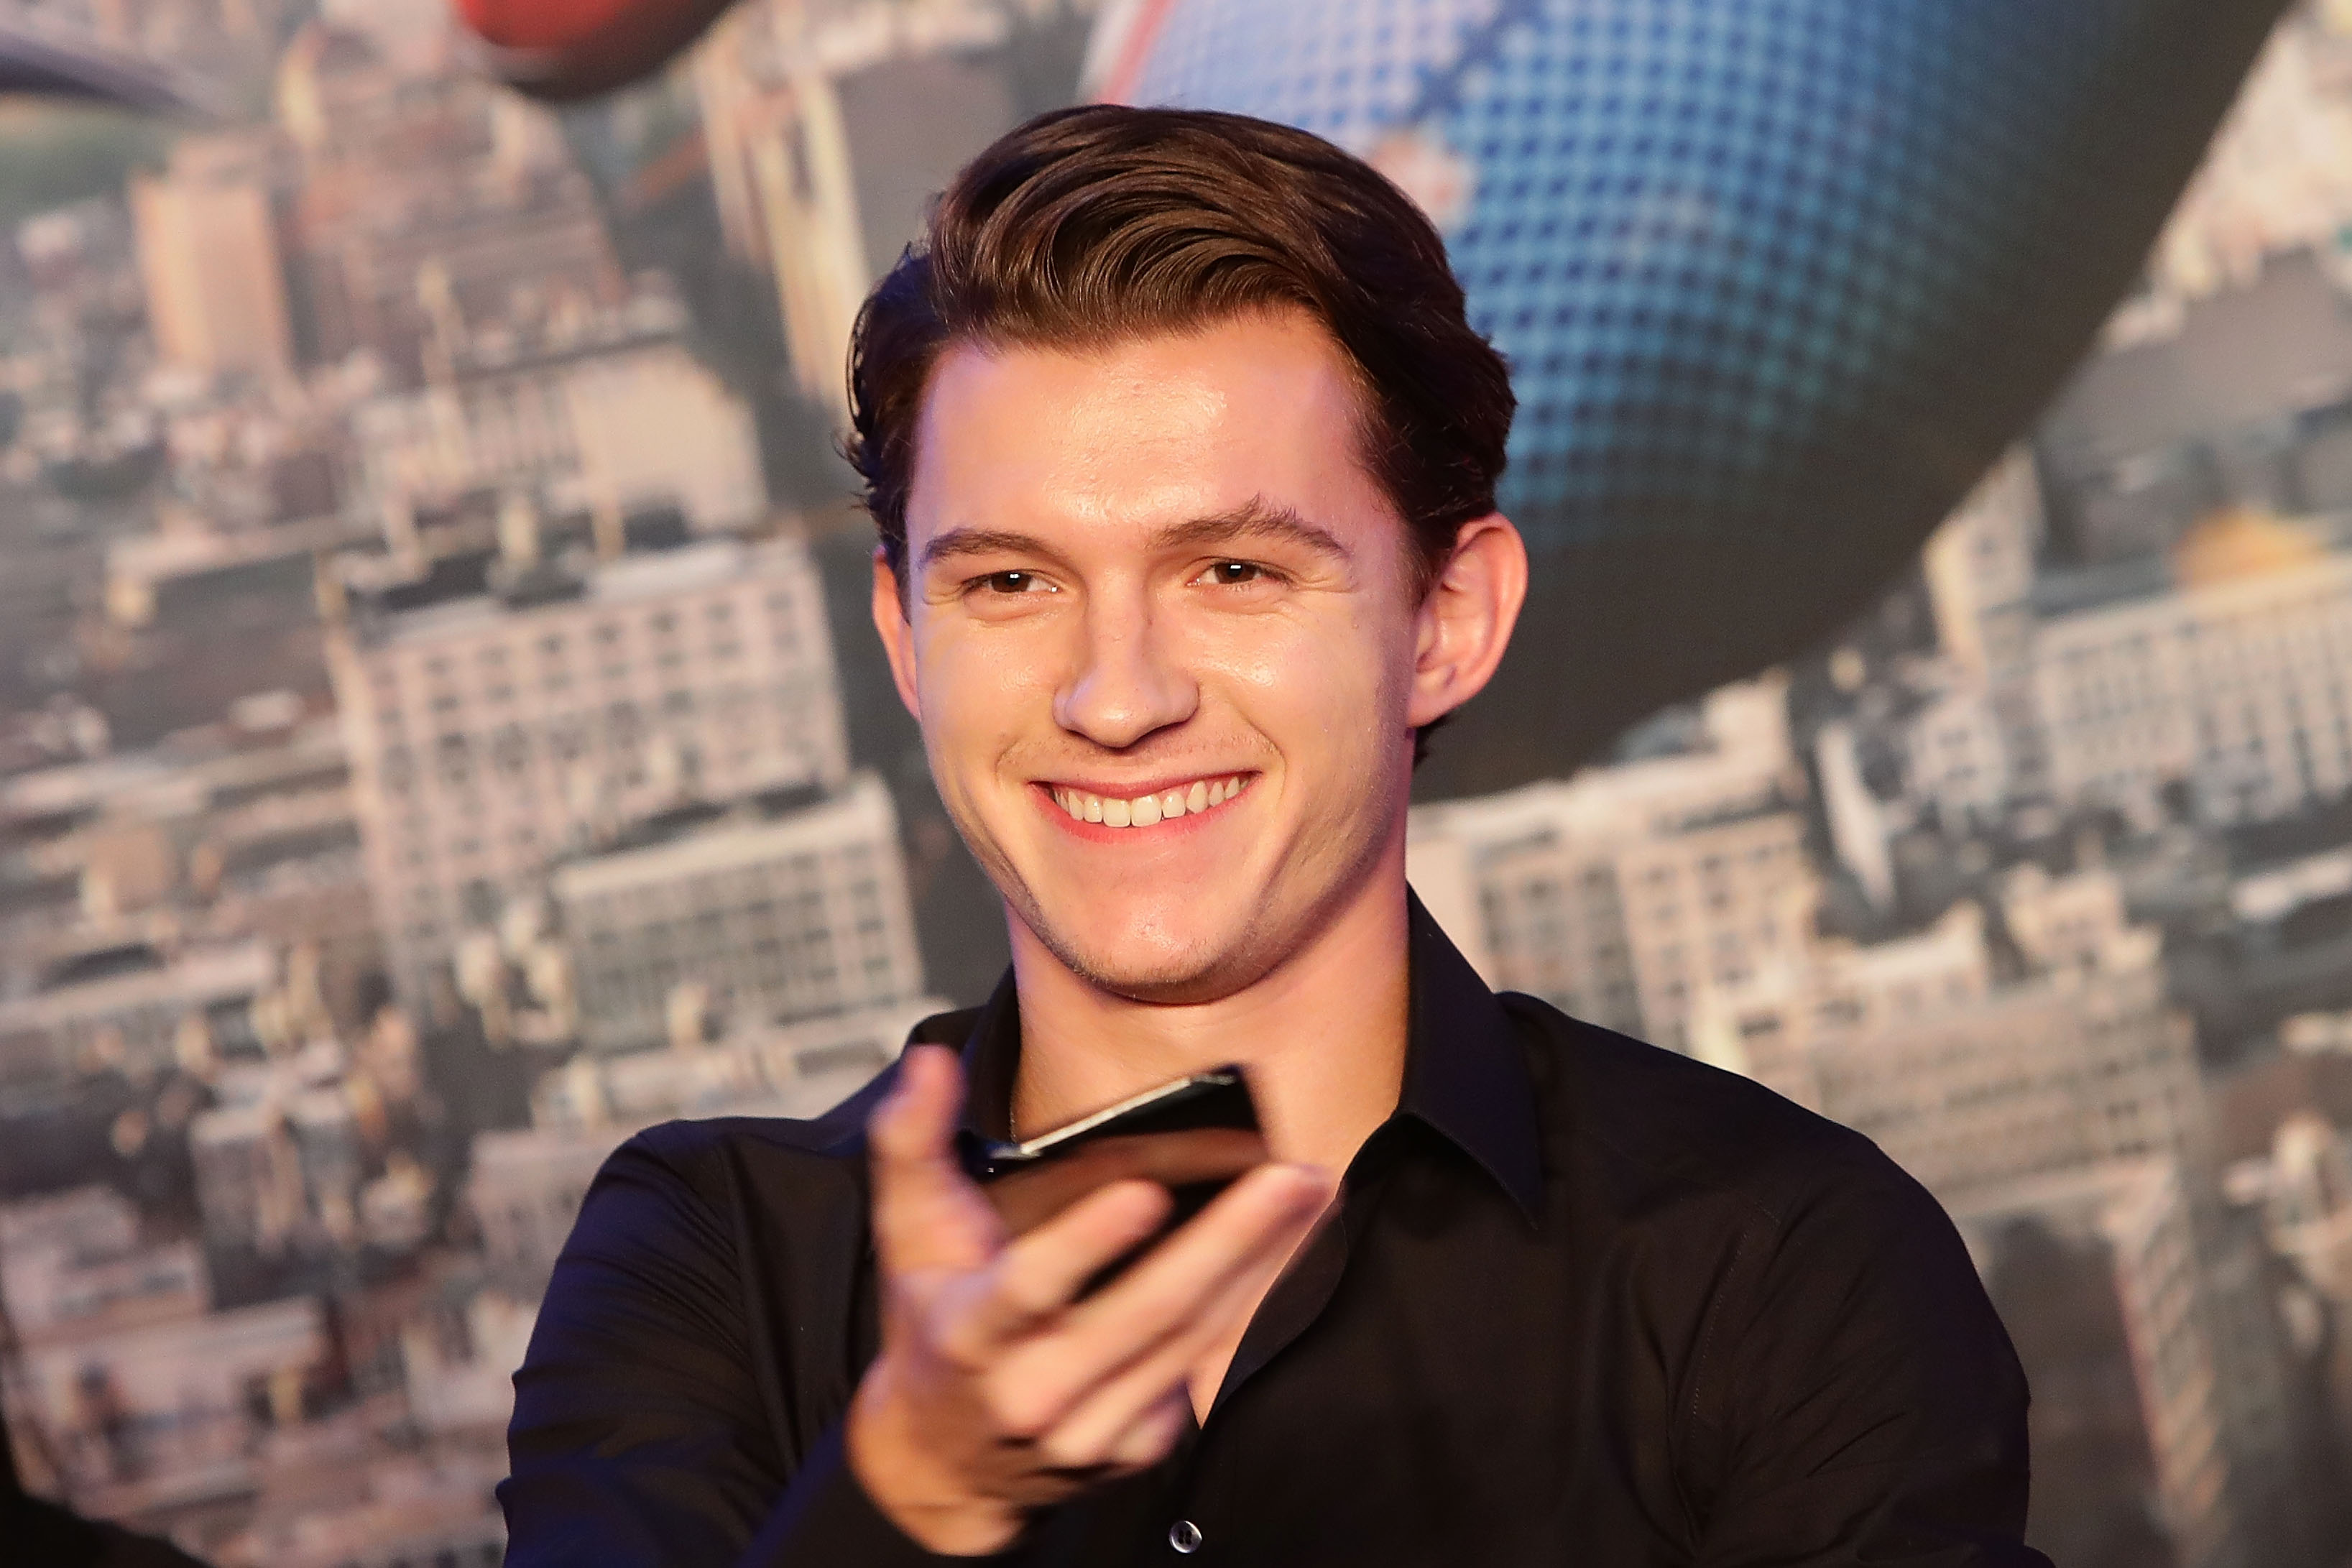 Tom Holland attends the 'Spider-Man: Homecoming' press conference on July 3, 2017 in Seoul, South Korea.